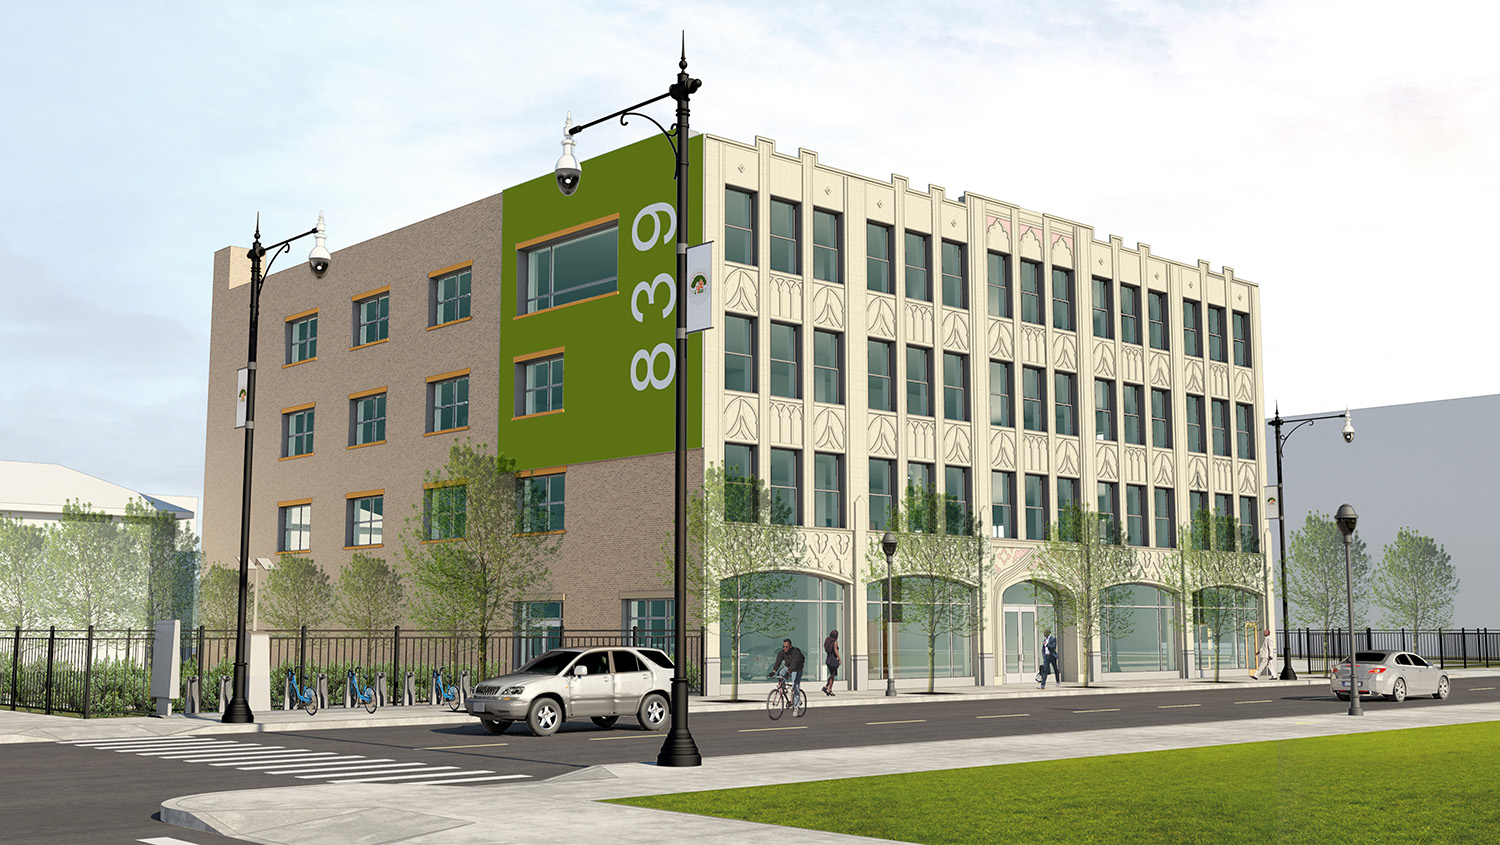 839 W 79th Street. Rendering by MKB Architects